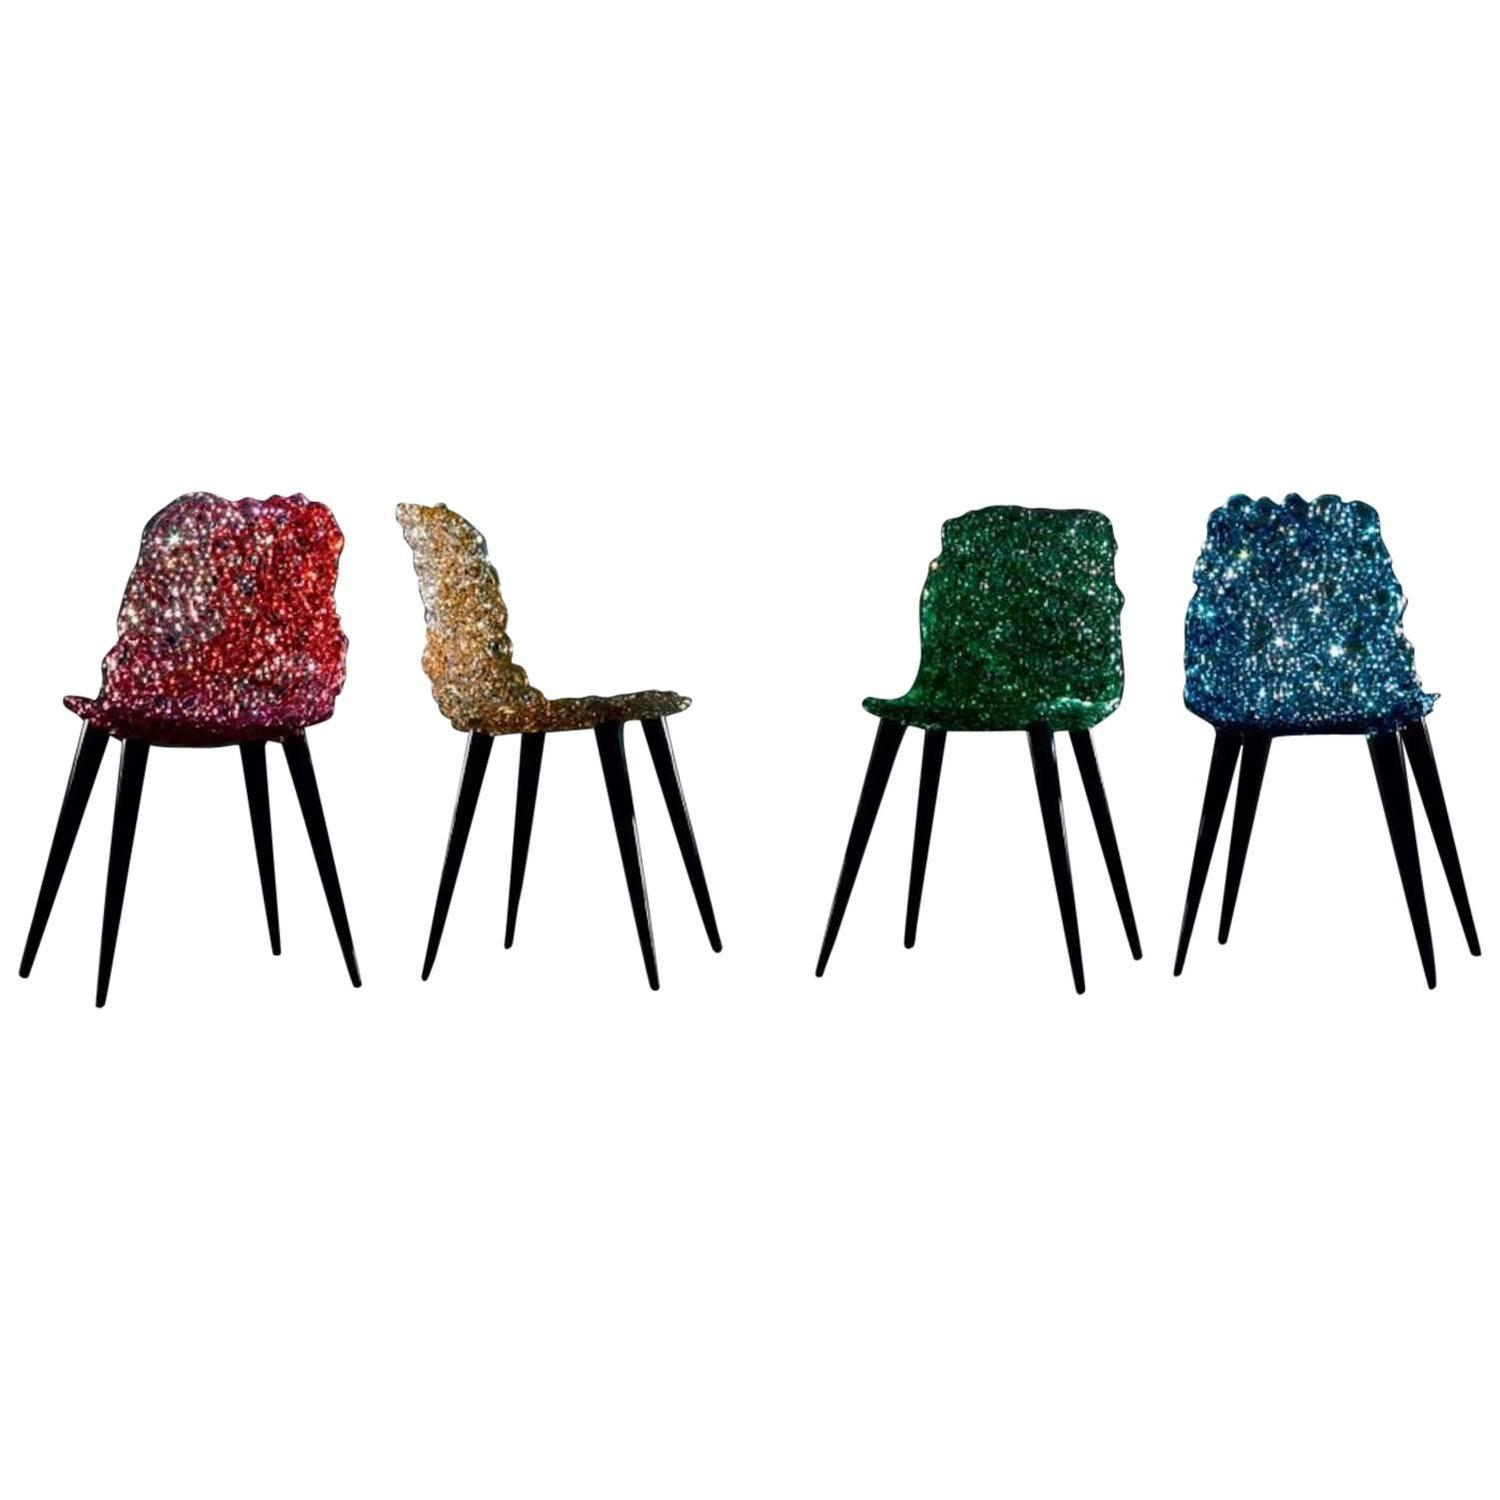 Edra Gina Chair Set of Four by Jacopo Foggini For Sale at 1stdibs